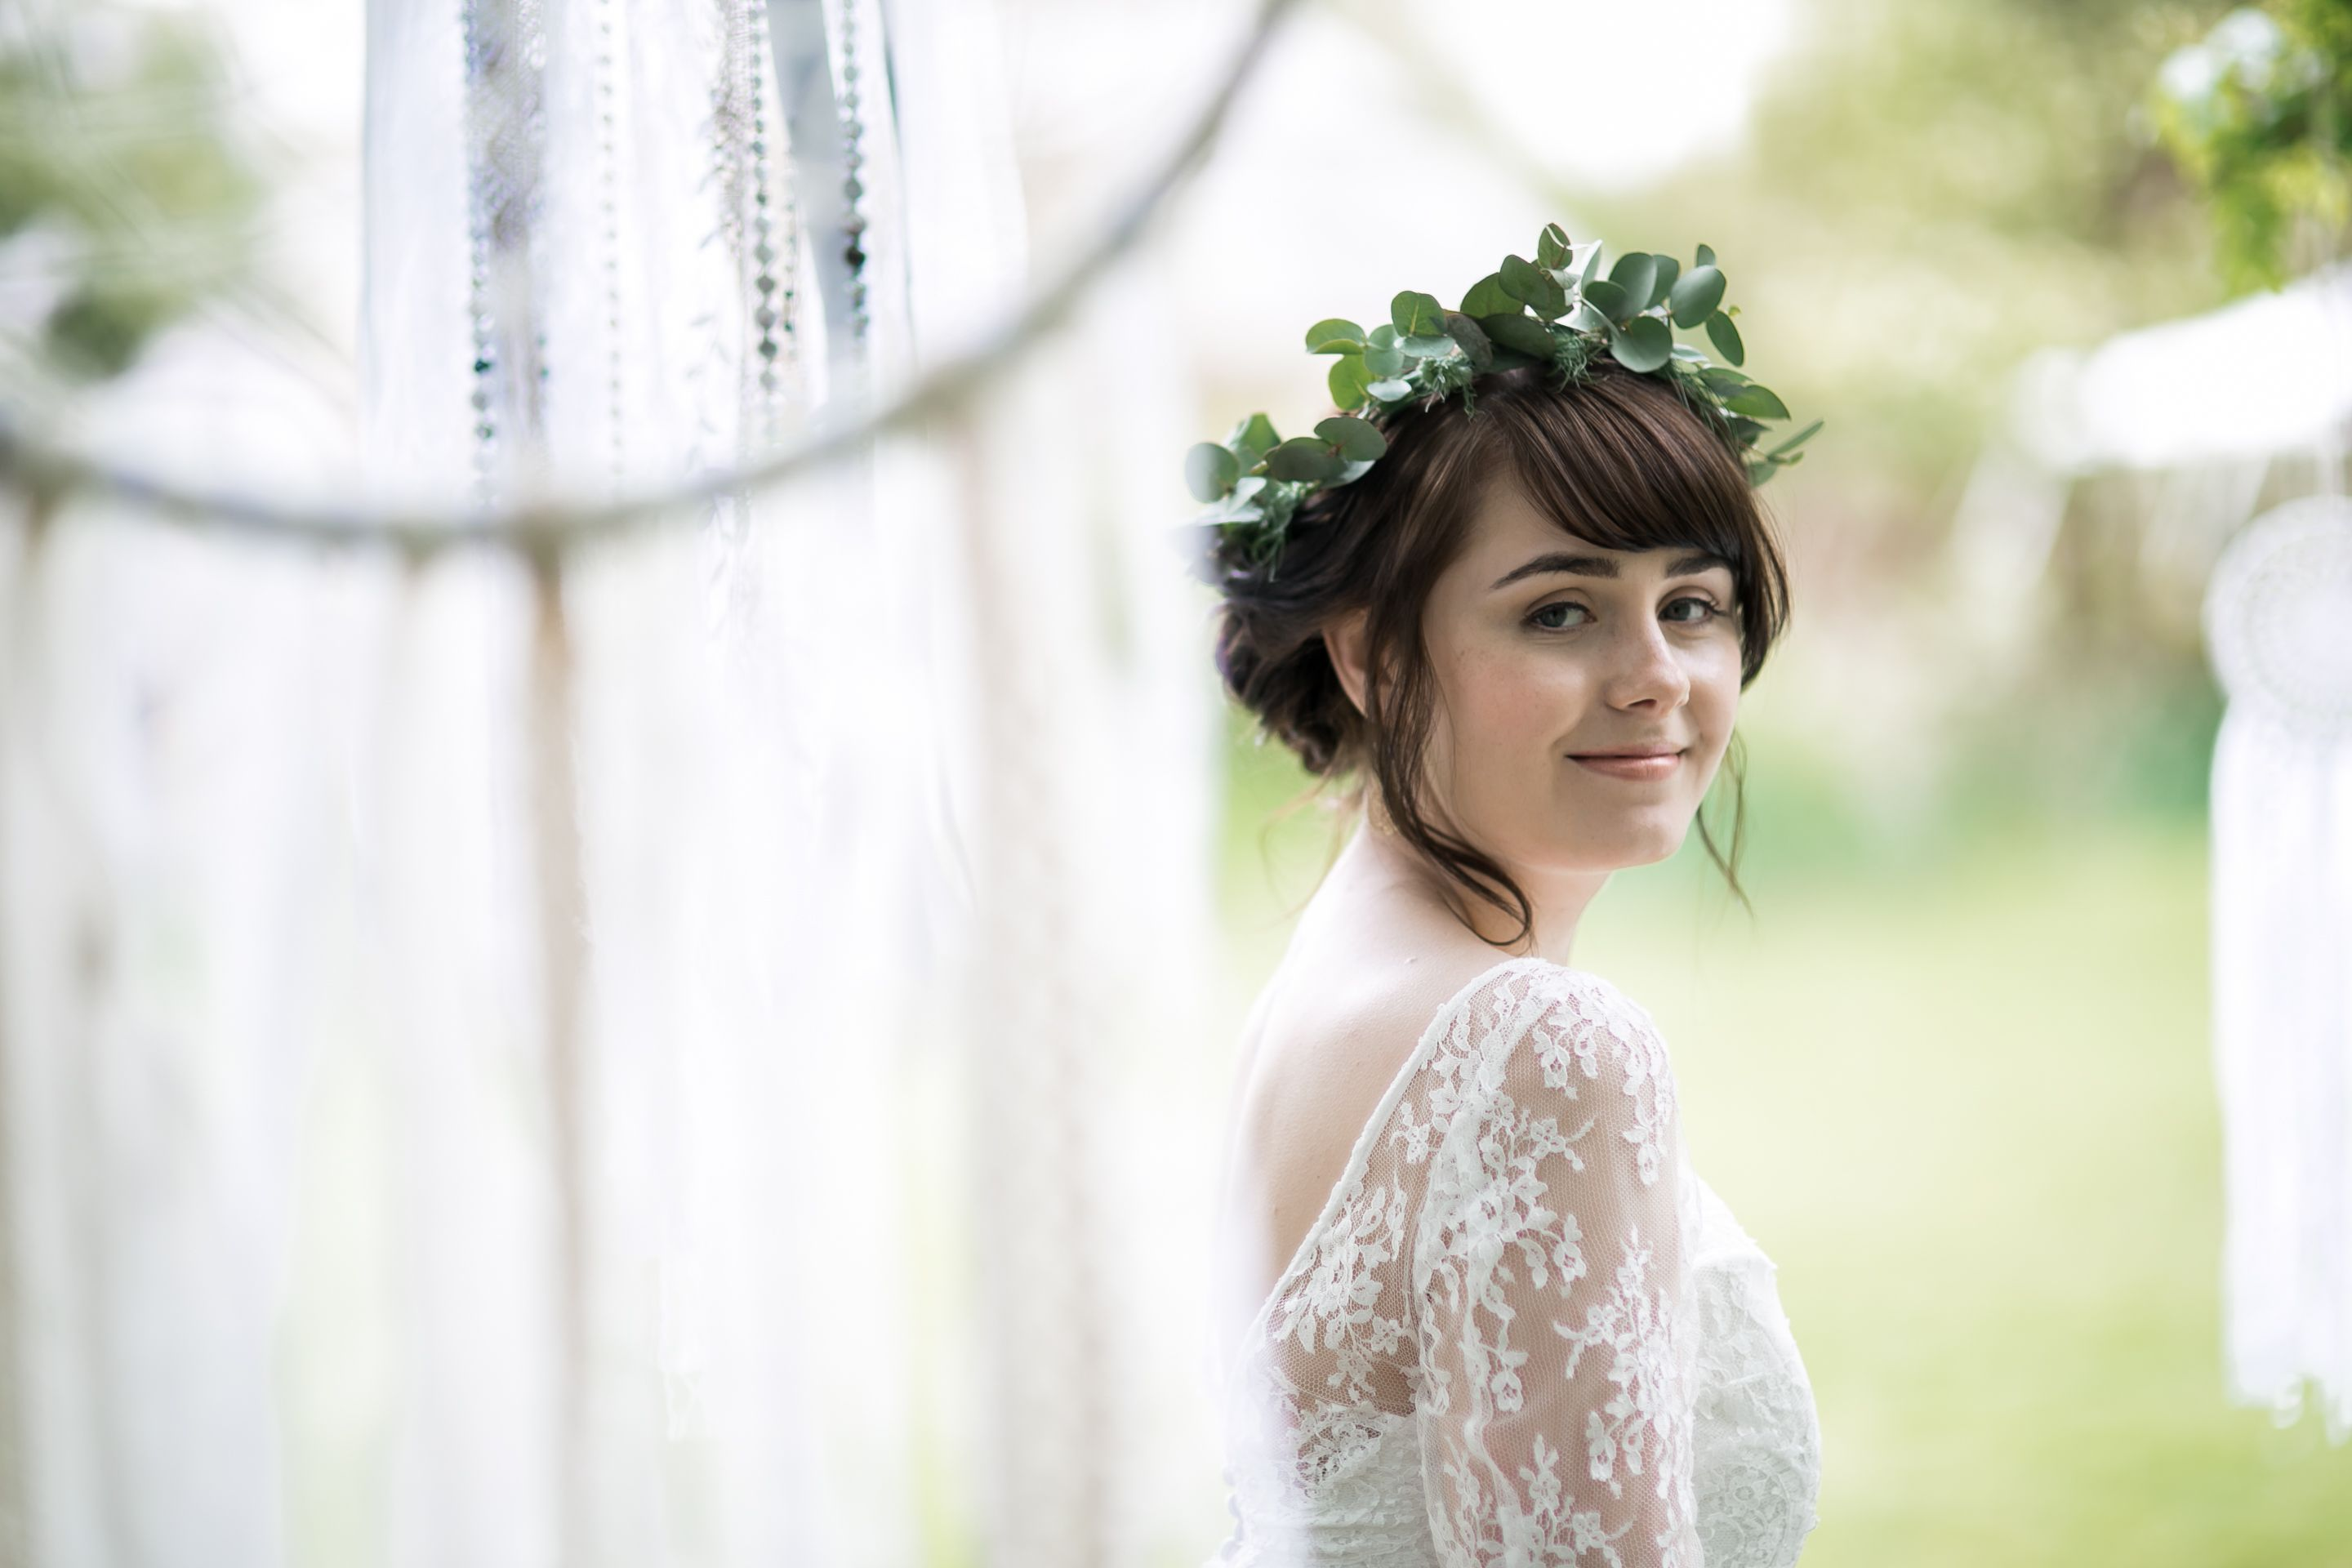 Boho bride with floral crown amongst handmade dreamcatchers from a